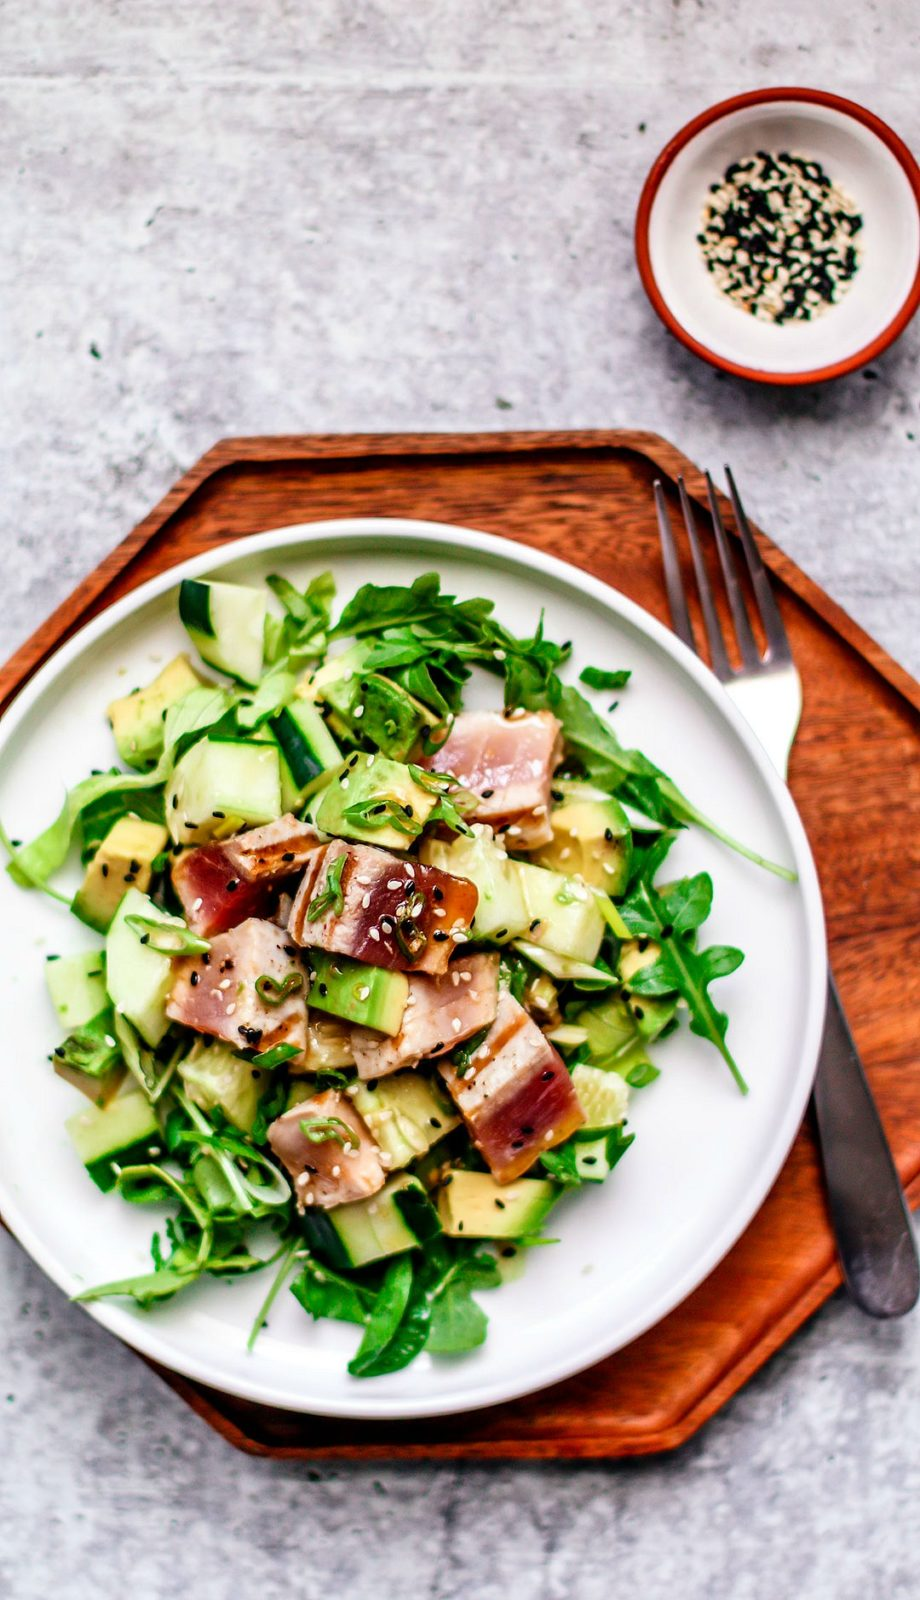 Plate of salad with grilled tuna on top.